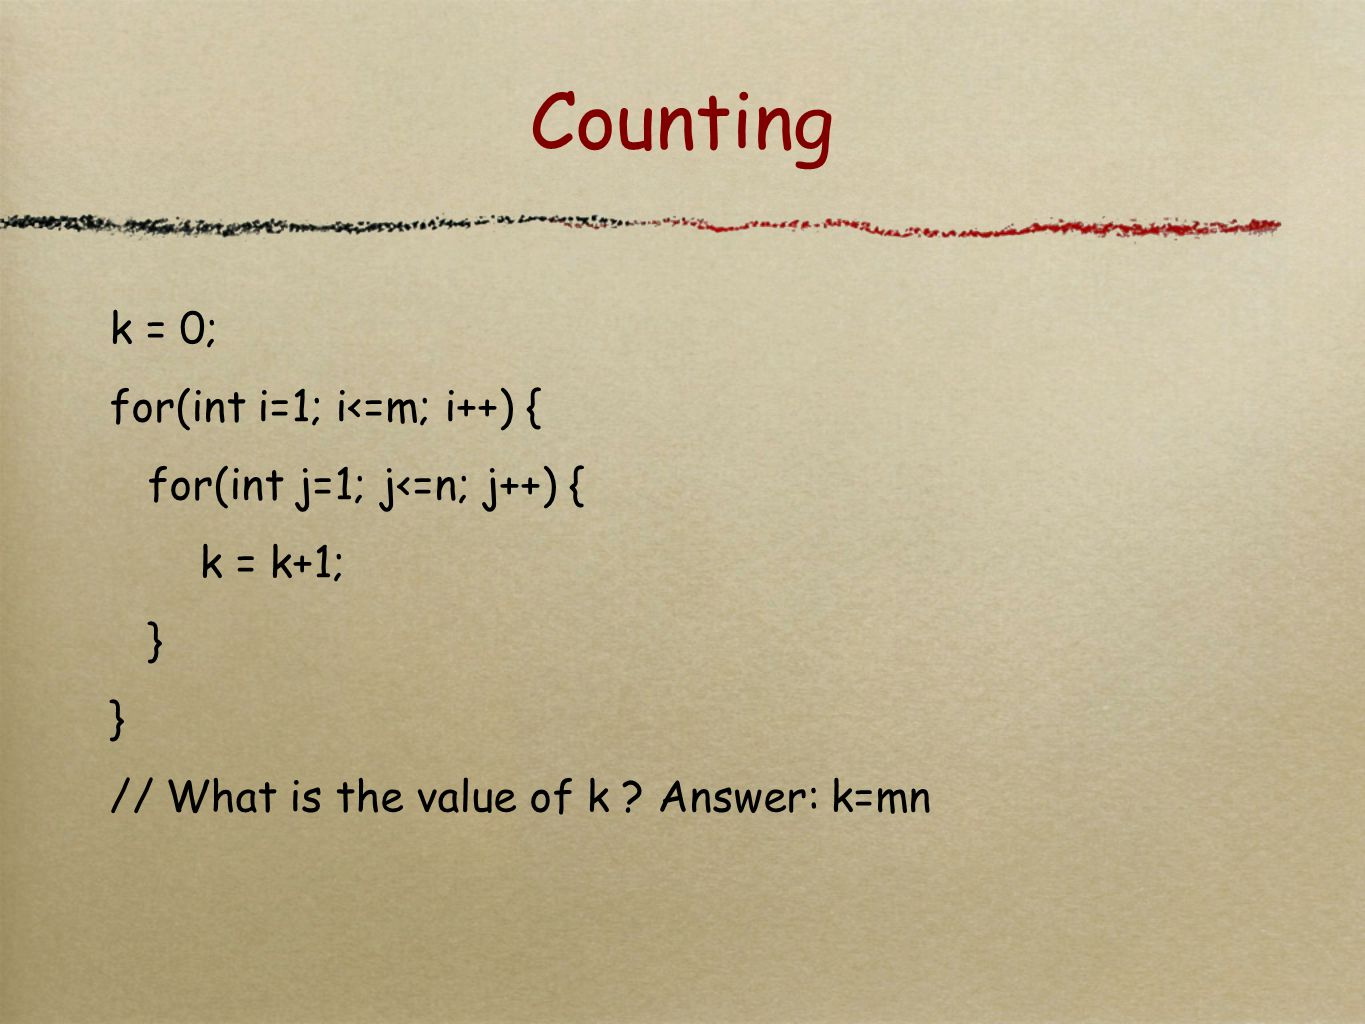 Counting k = 0; for(int i=1; i<=m; i++) { for(int j=1; j<=n; j++) { k = k+1; } // What is the value of k .